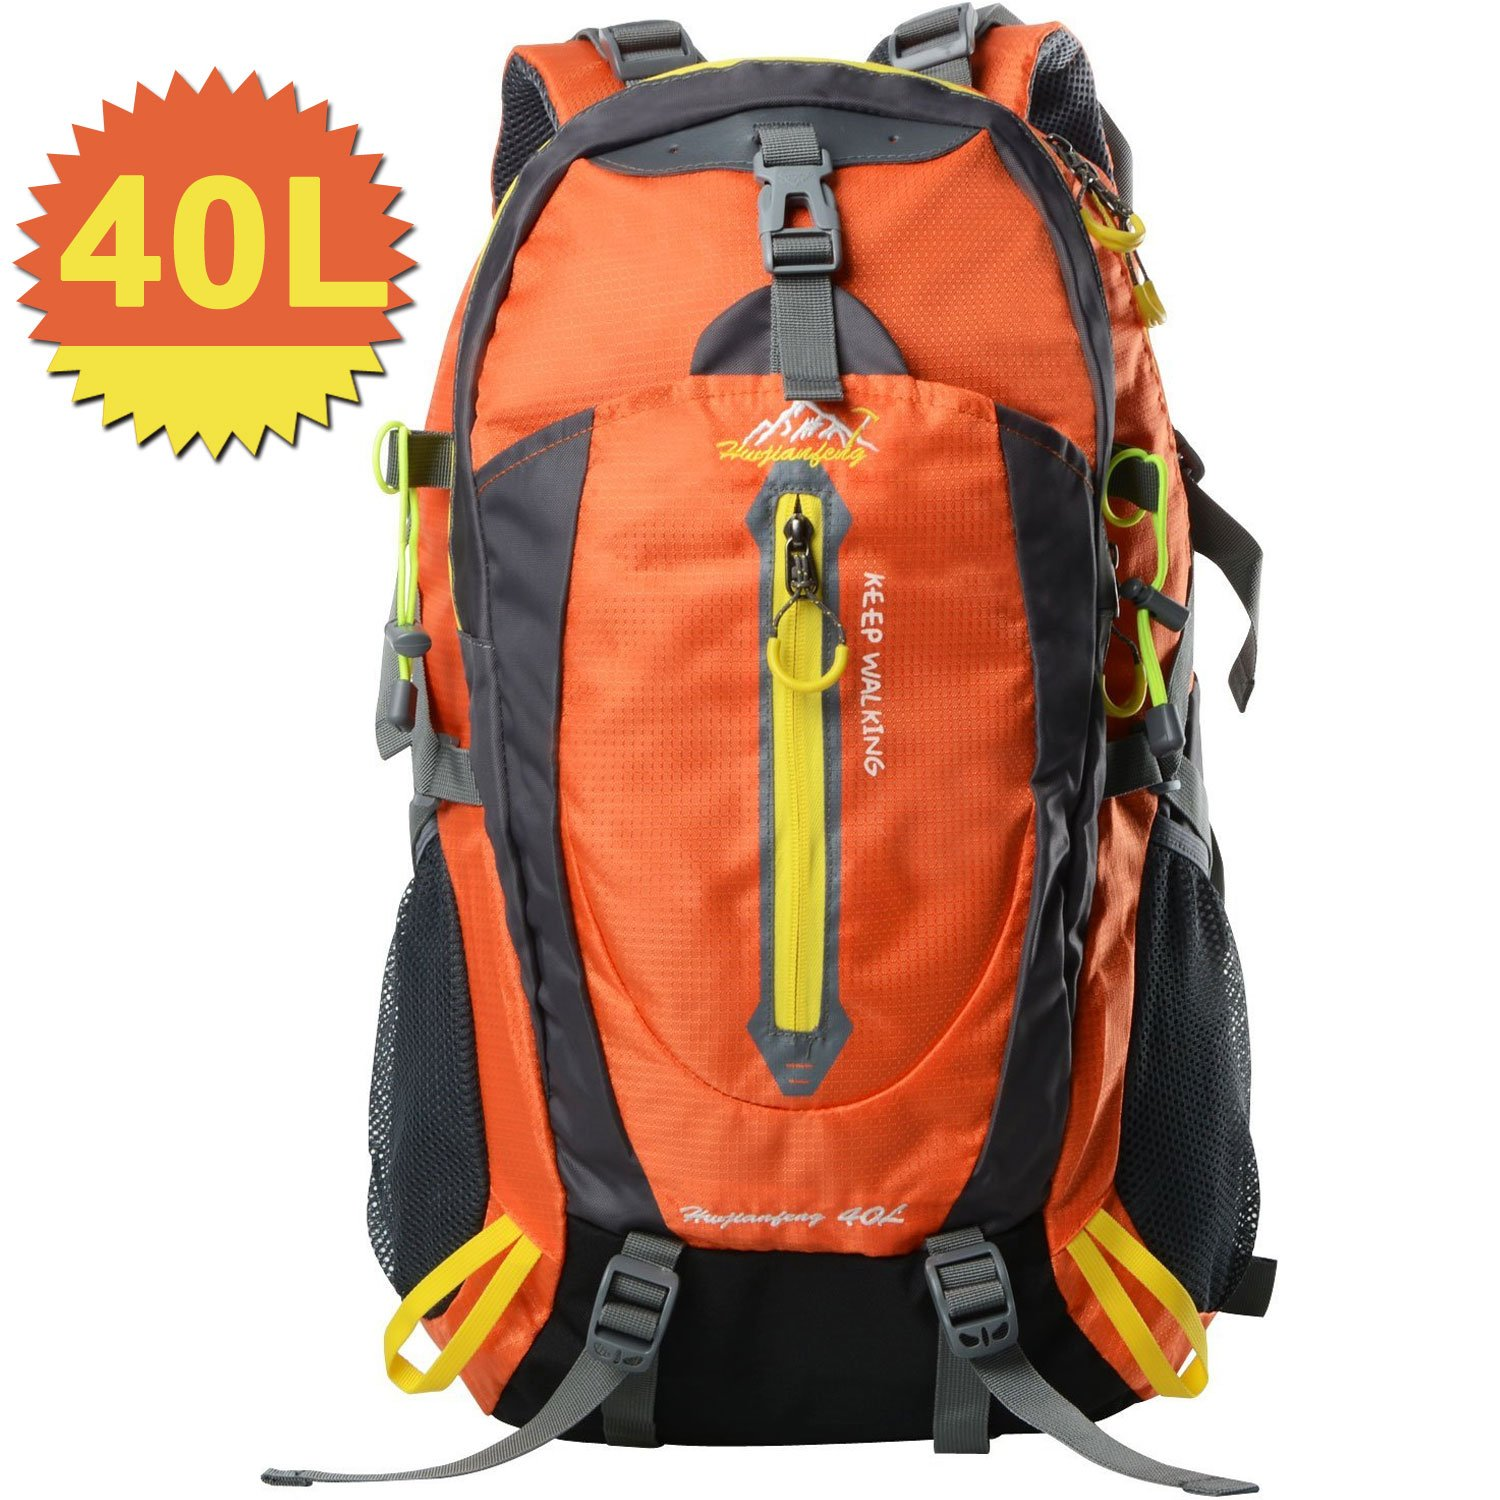 40L Hiking Backpack Waterproof Daypack Bags For Climbing, Camping, Hiking, Travel,Cycling,Skiing (orange)